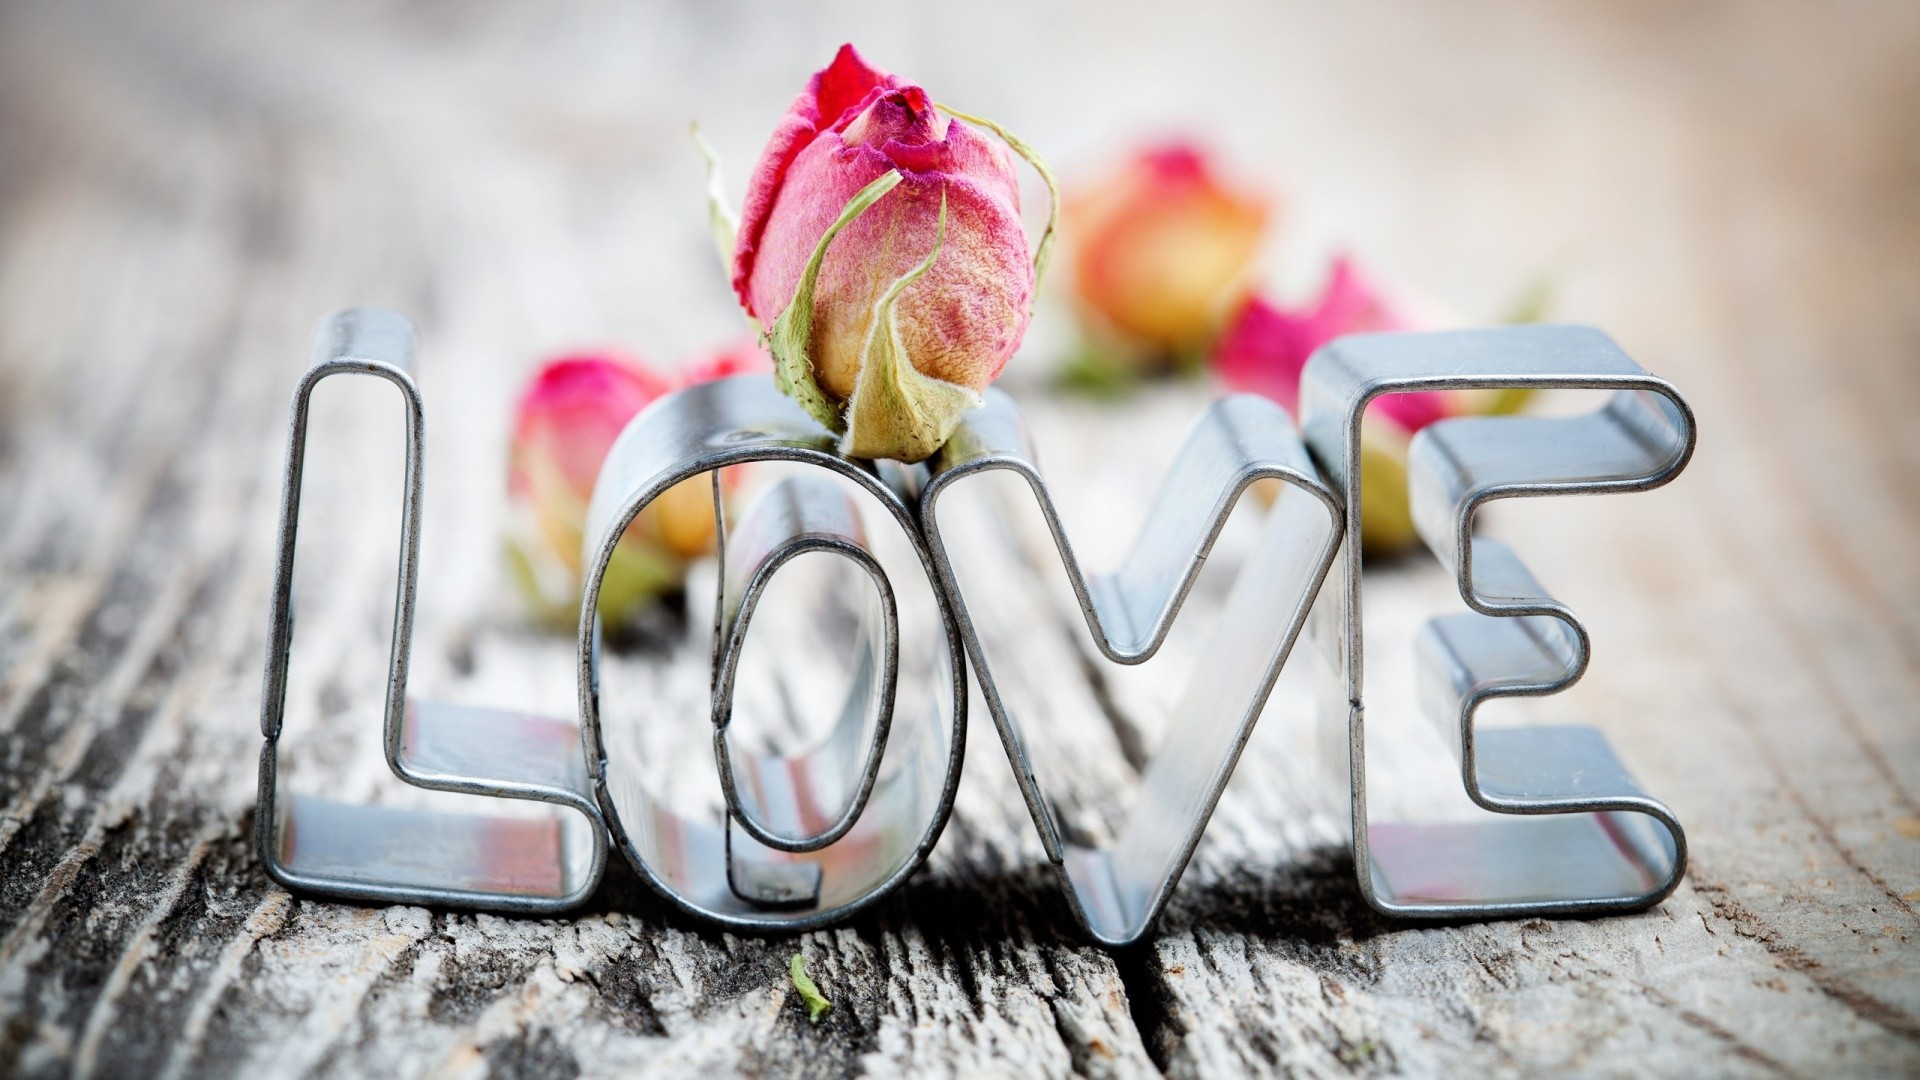 Cute Love Wallpapers Picture For Desktop Wallpaper 1920 x 1080 px 623.08 KB  iphone sad animated